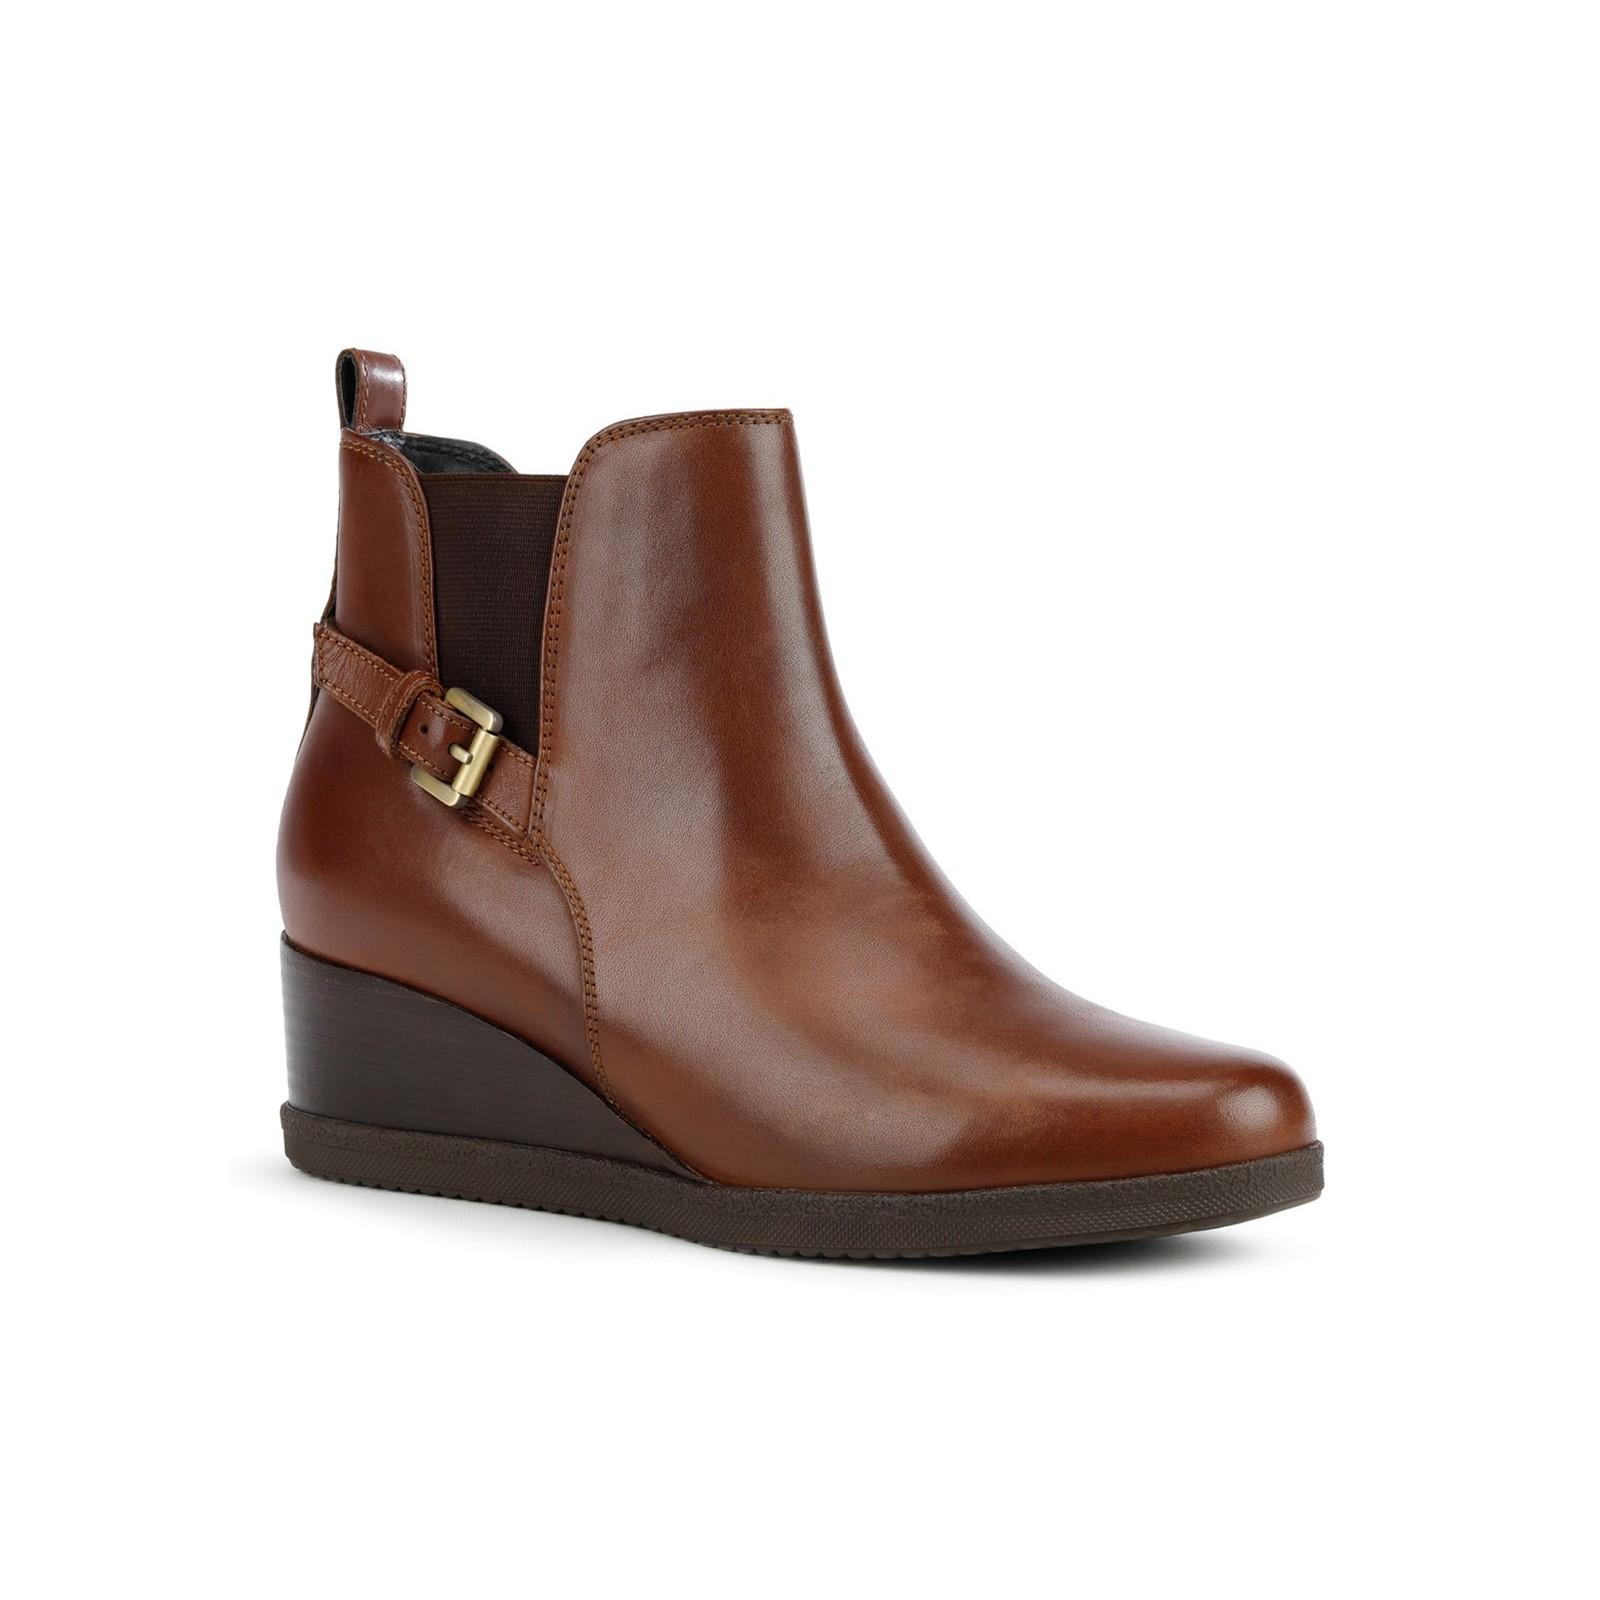 Geox Womens/Ladies Anylla Patent Leather Wedge Ankle Boots (6 UK) (Brown)